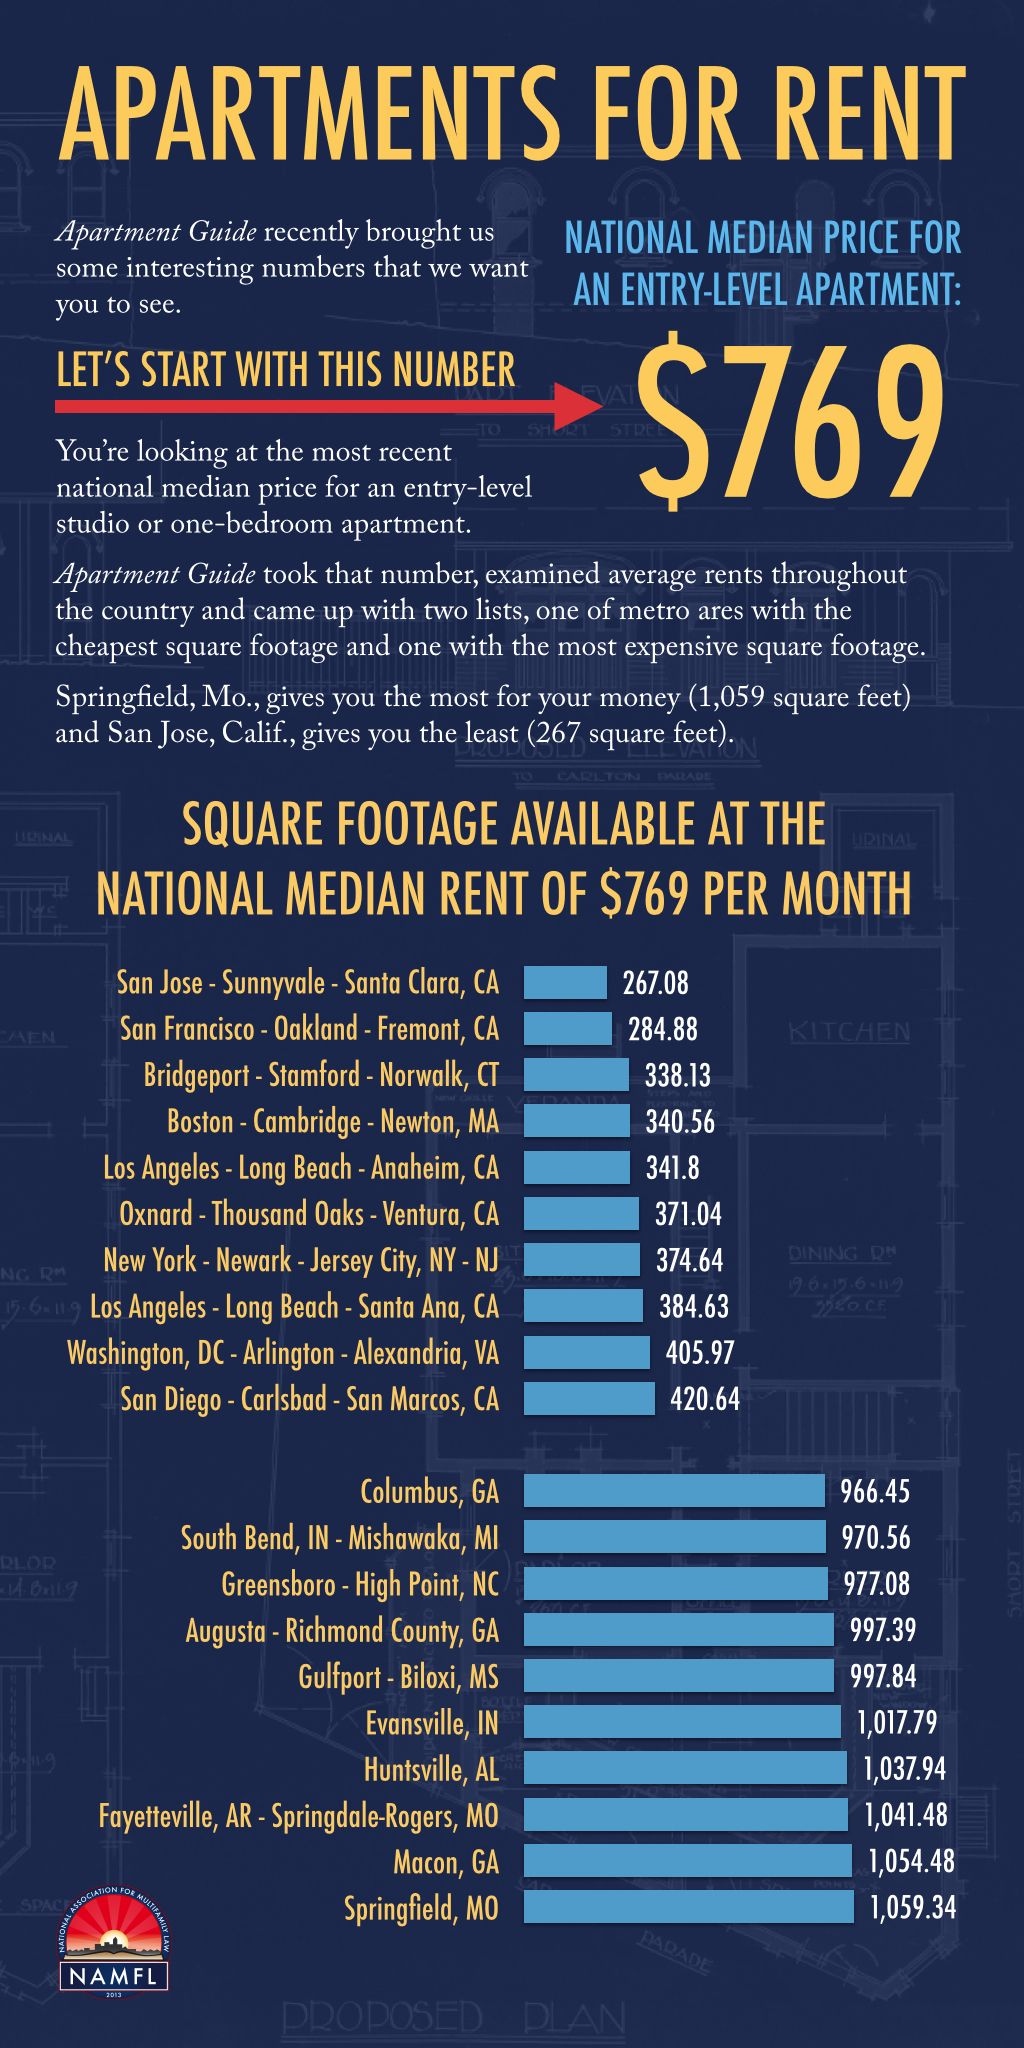 Here's what 769 a month will get you 1,059 square feet